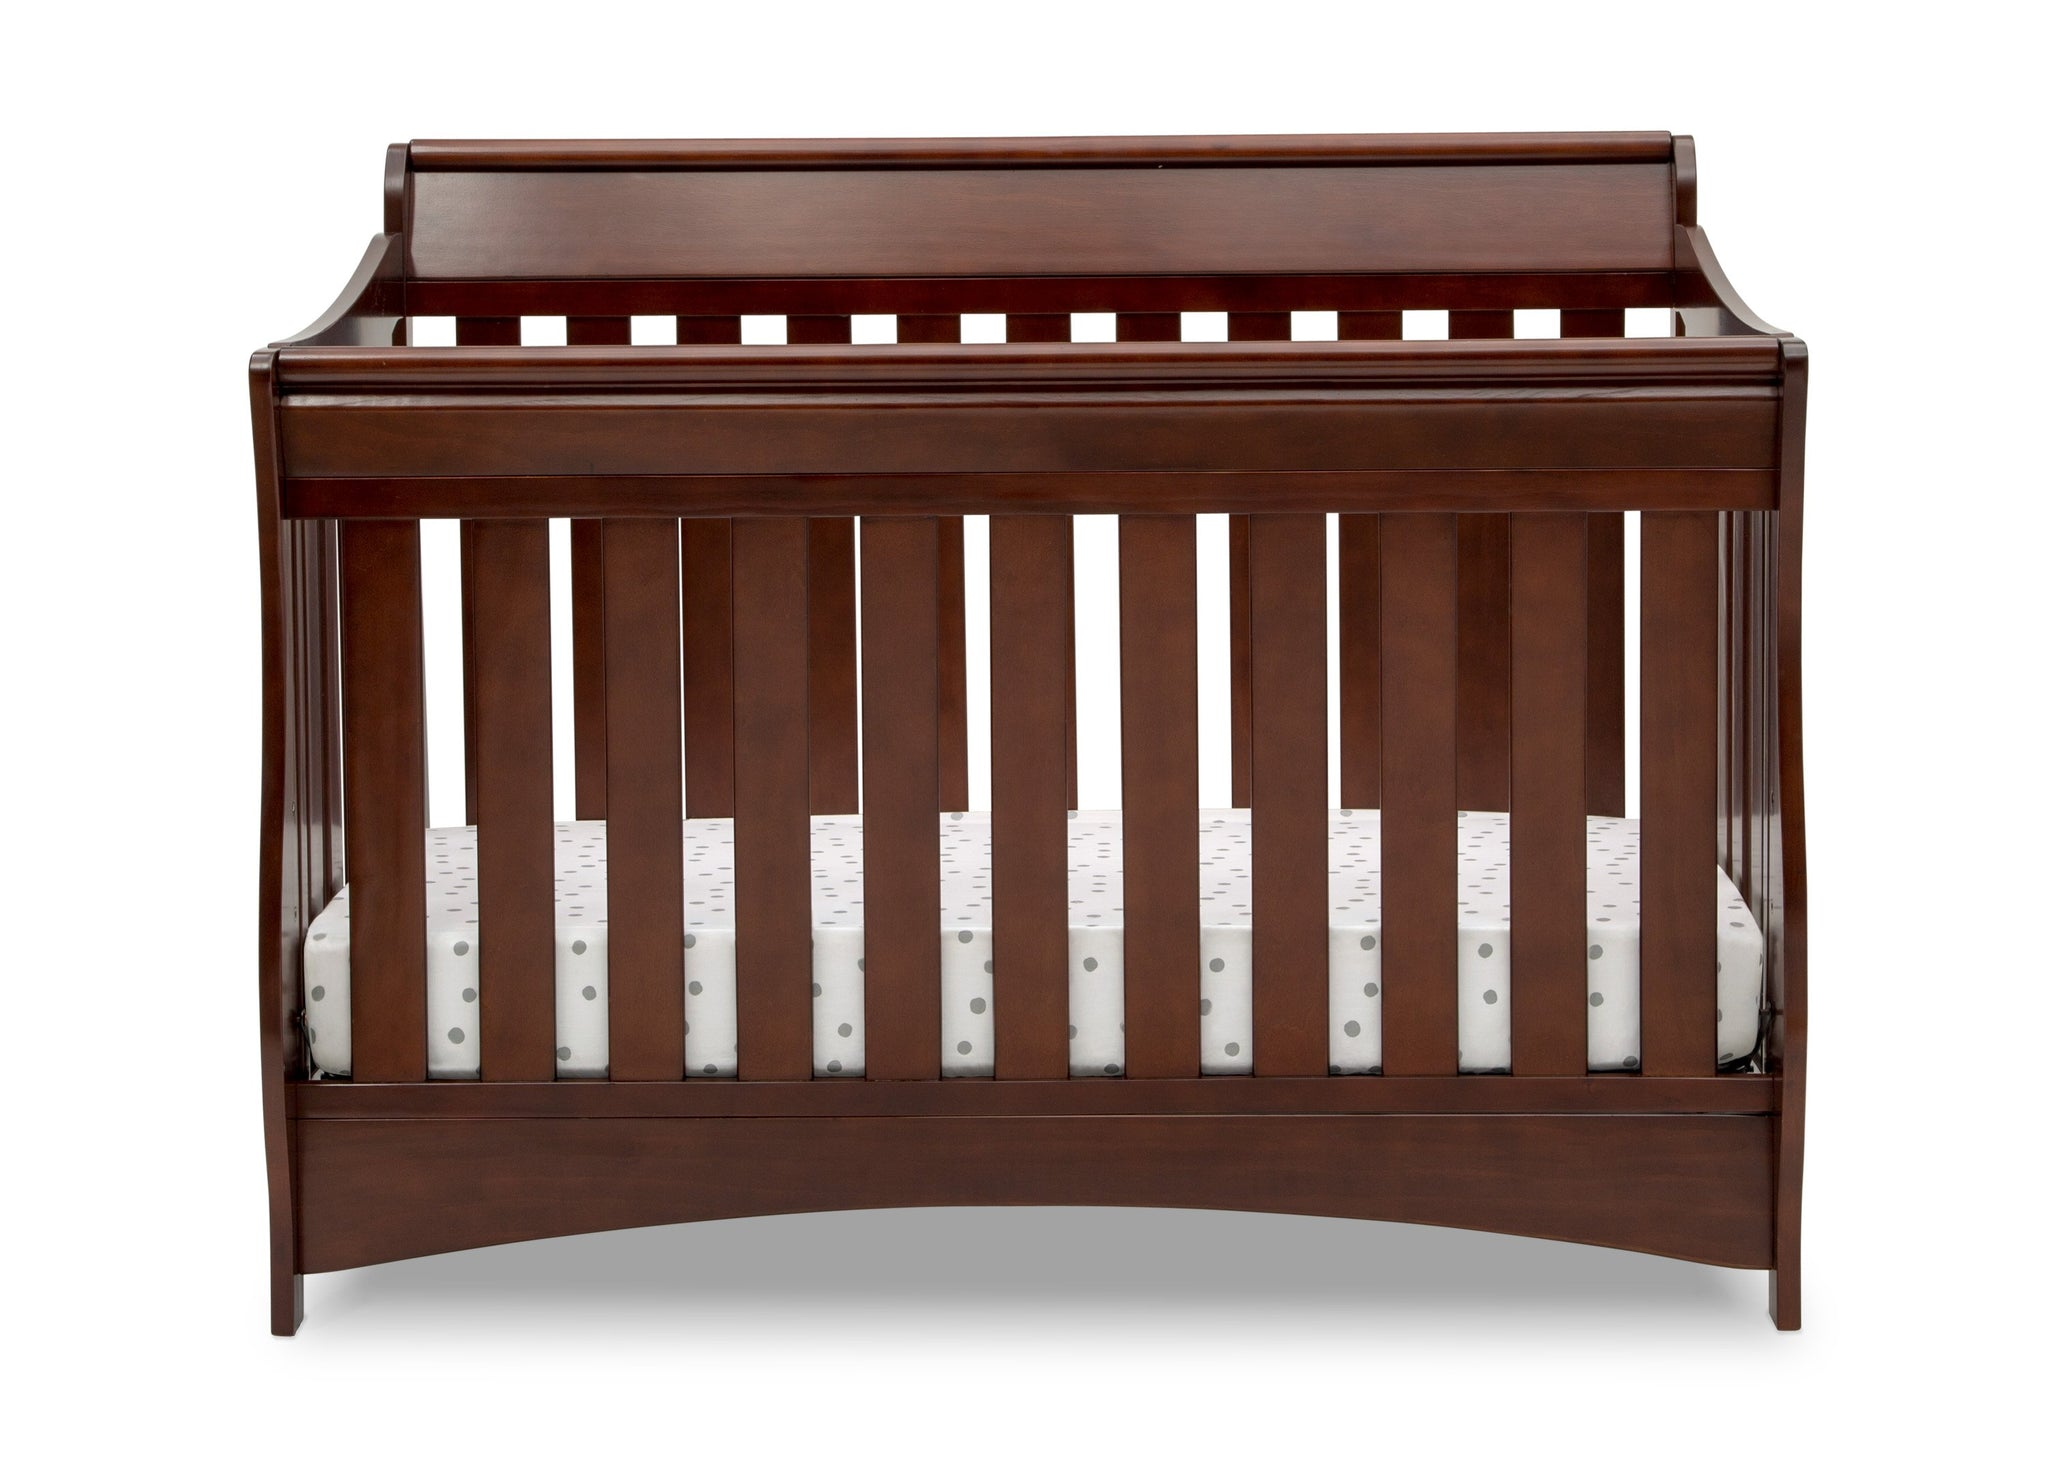 Delta Children Black Cherry Espresso (607) Bentley S Series Deluxe 6-in-1 Convertible Crib, Front Crib Silo View